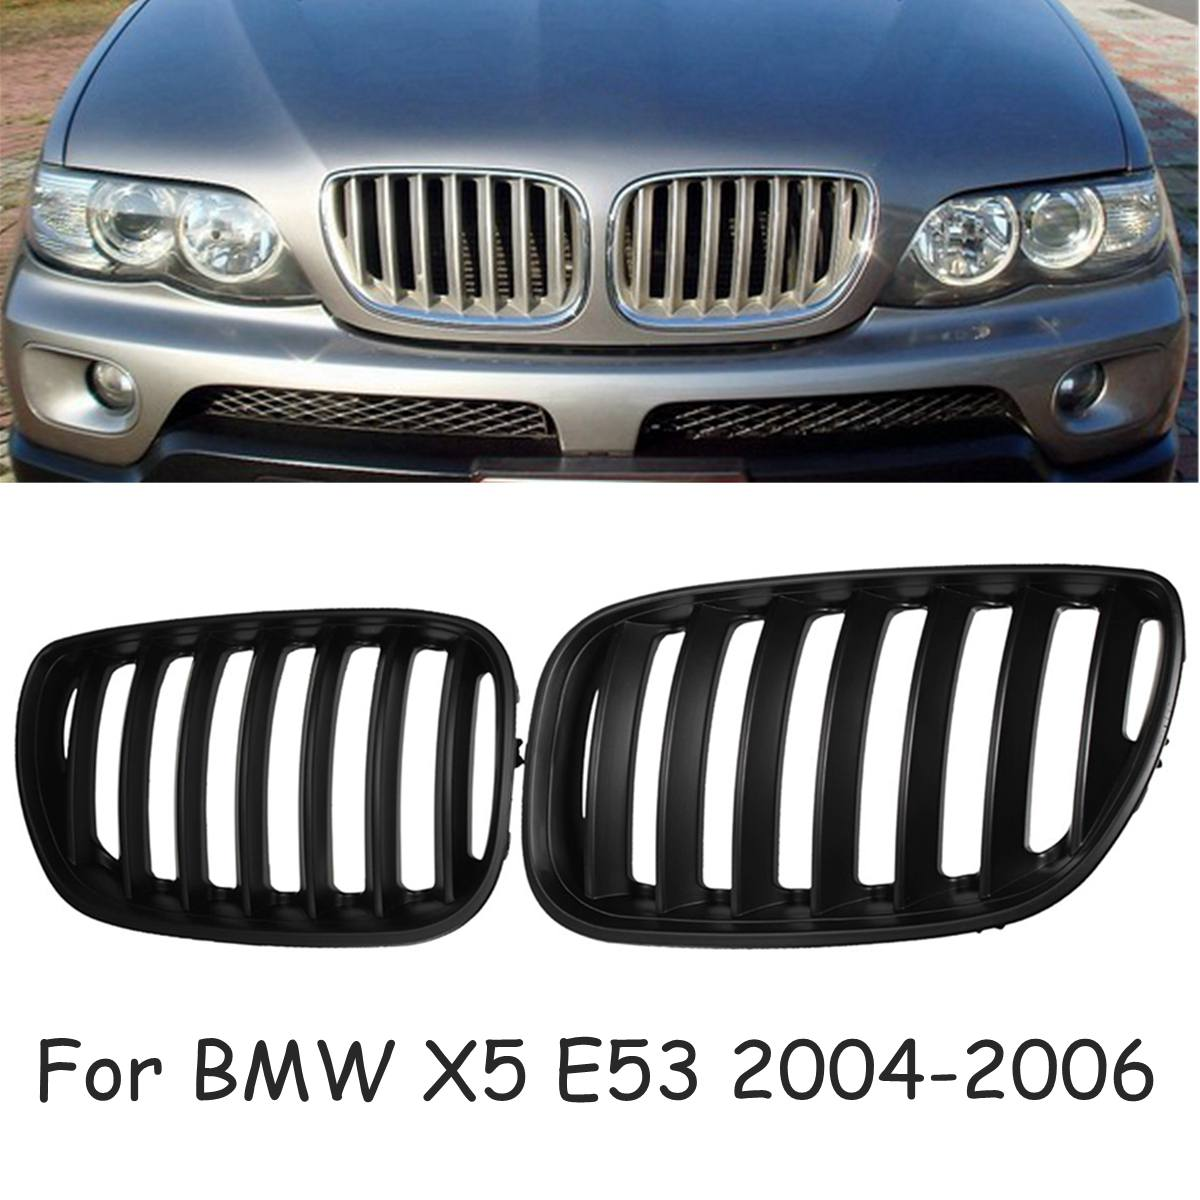 for BMW X5 E53 2004-2006  Pair Matte Black Chrome Front Hood Kidney Sport Grills Grille Front Bumper Grille Car Styling